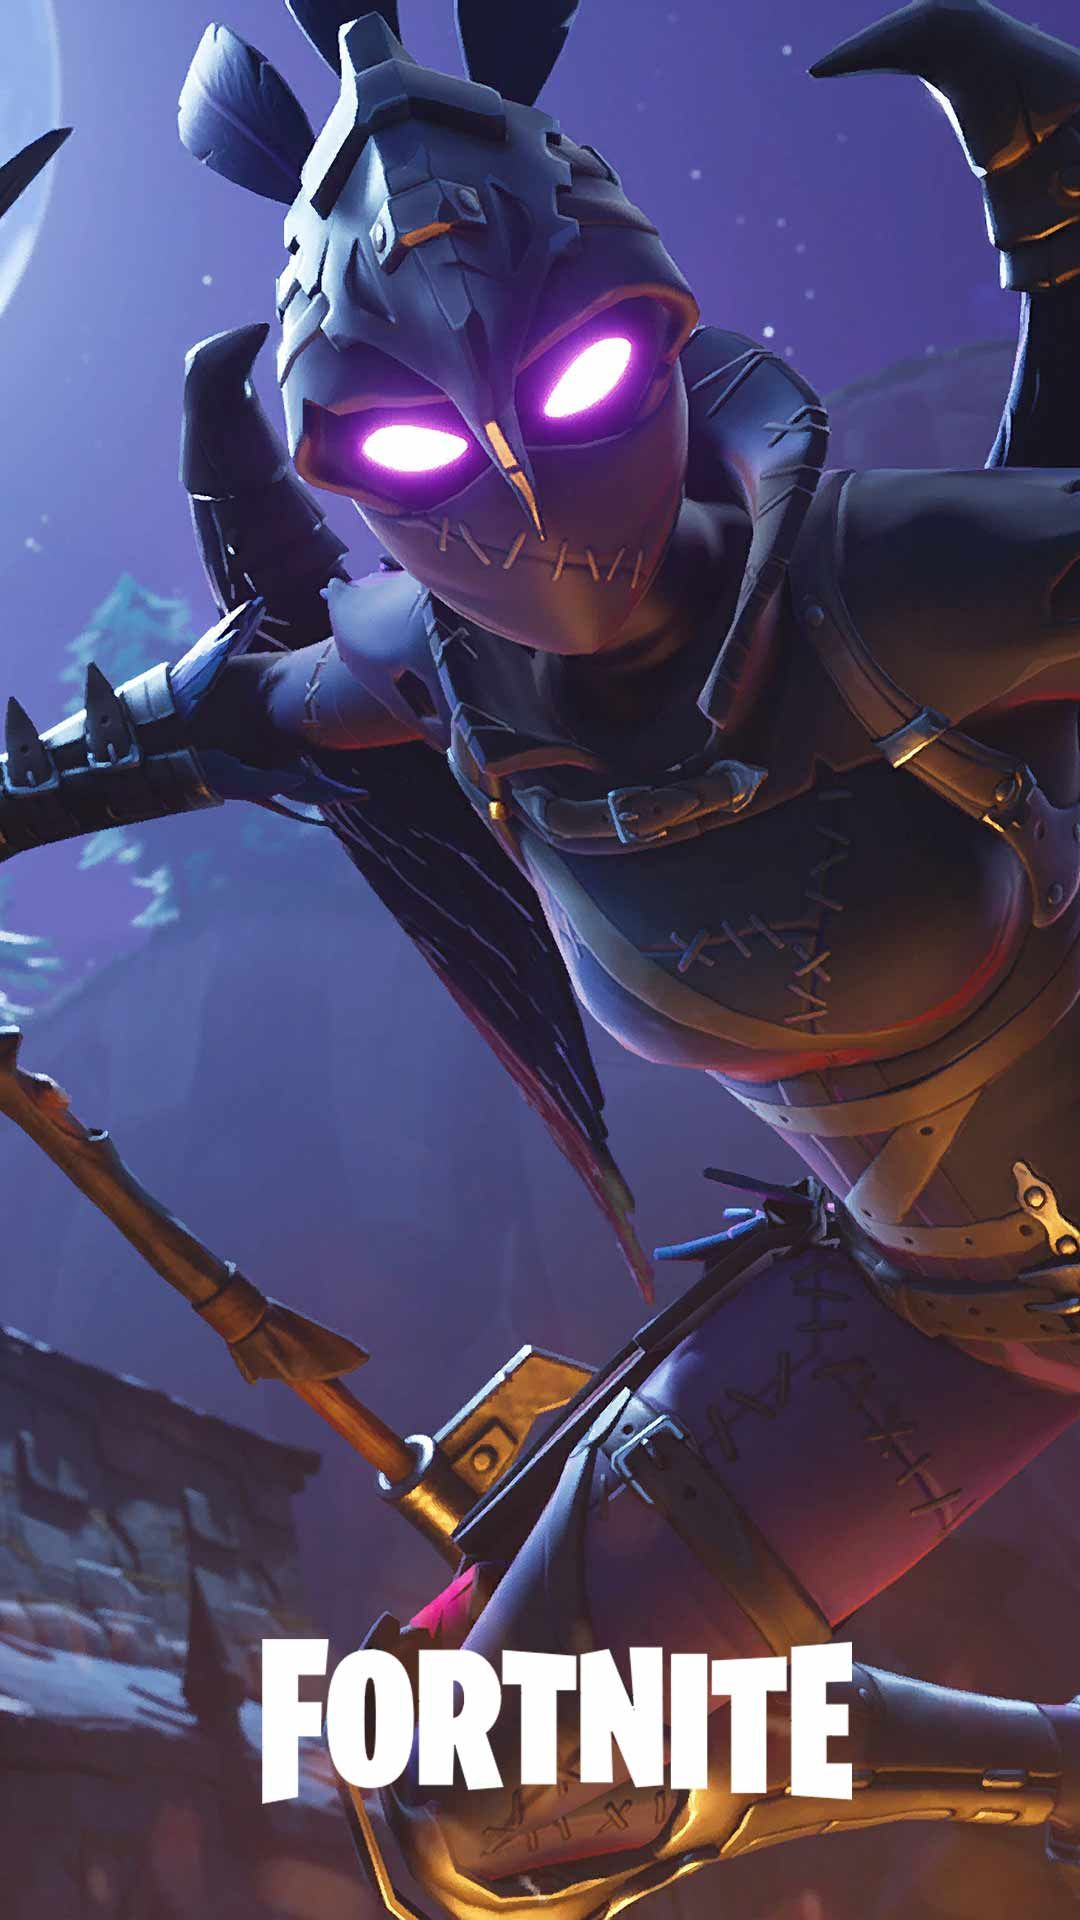 30 Fortnite Wallpaper Hd Phone Backgrounds For Iphone Android Lock Screen Characters Skins Art In 2020 Spiderman Art Sketch Fortnite Gaming Wallpapers